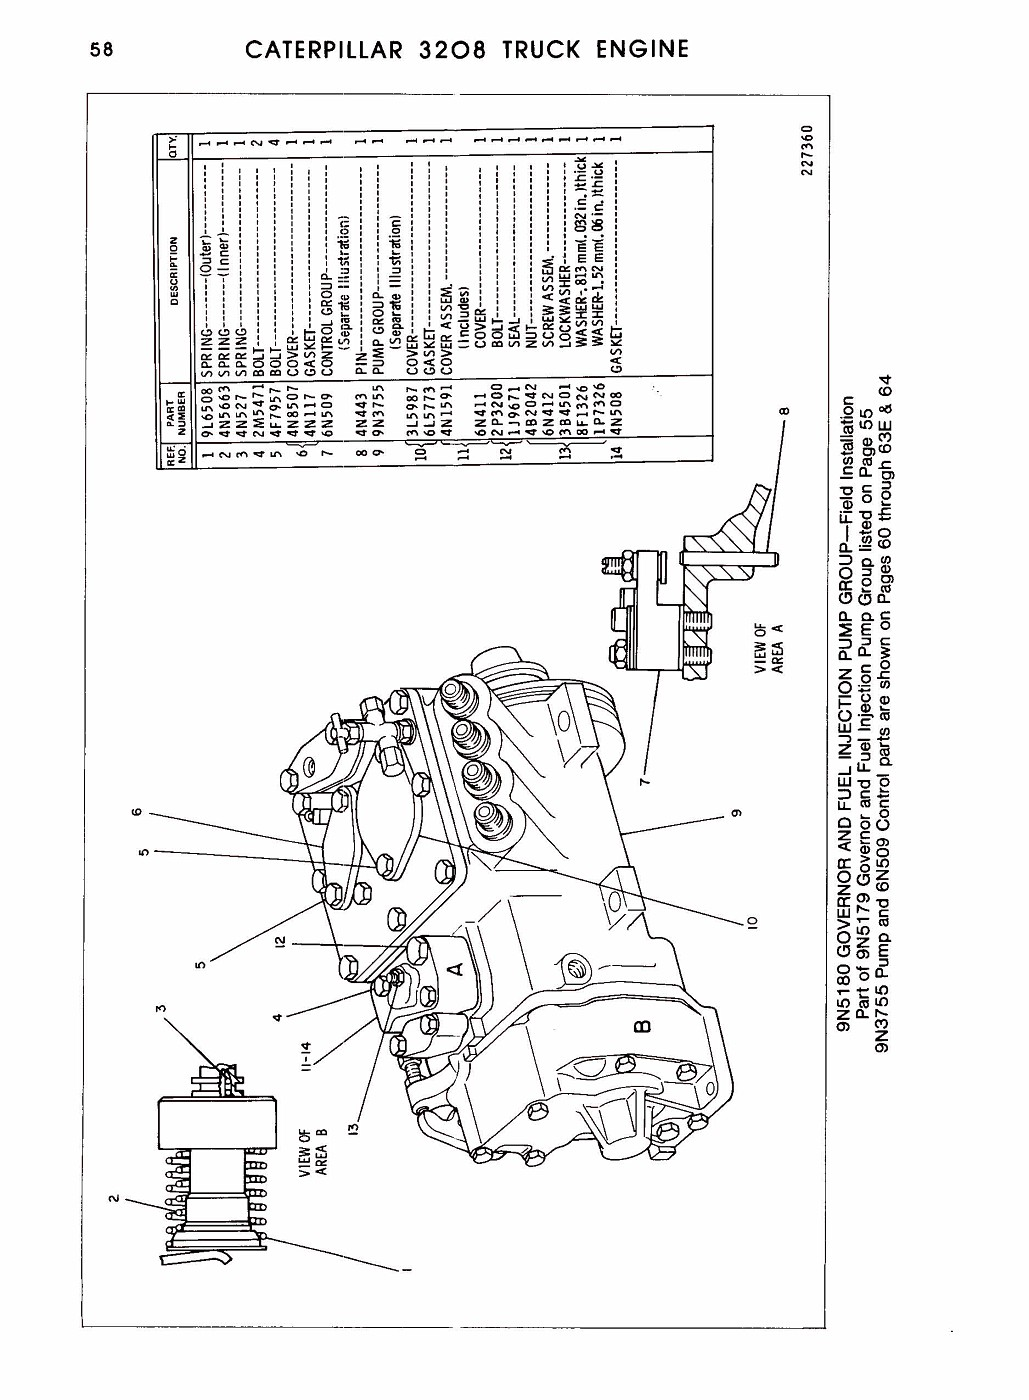 Photo 3208 Parts Manual Pagina 119 Cat Dieselengine Fuel Injector Diagram Album Modeltrucks25 Fotkicom And Video Sharing Made Easy